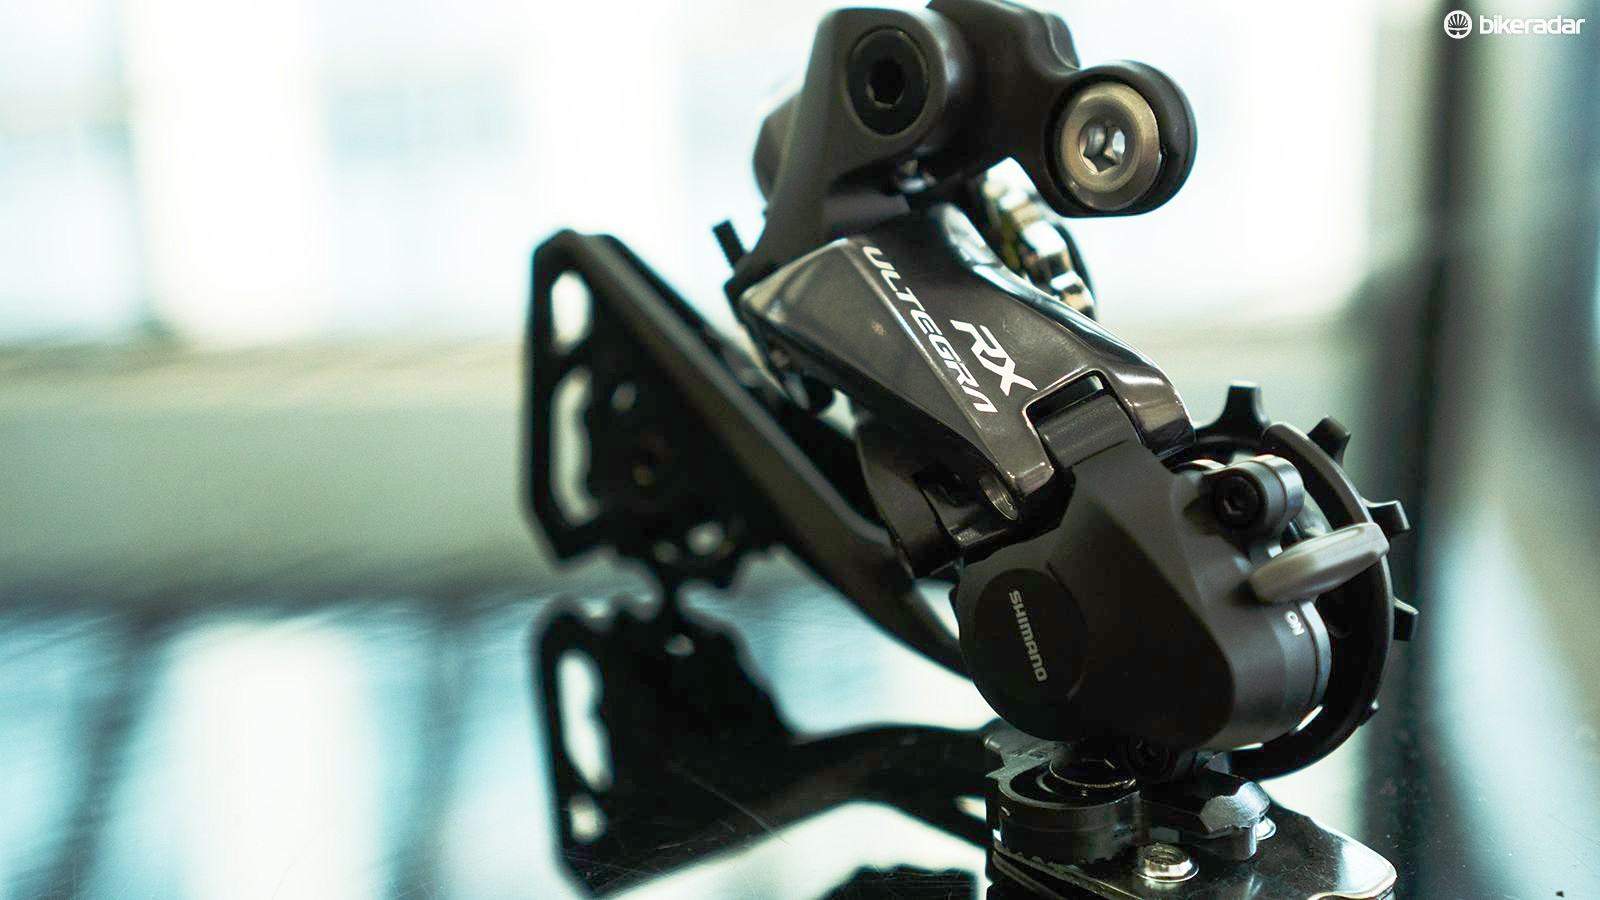 The Shimano Ultegra RX Di2 rear derailleur is a component that's time has come